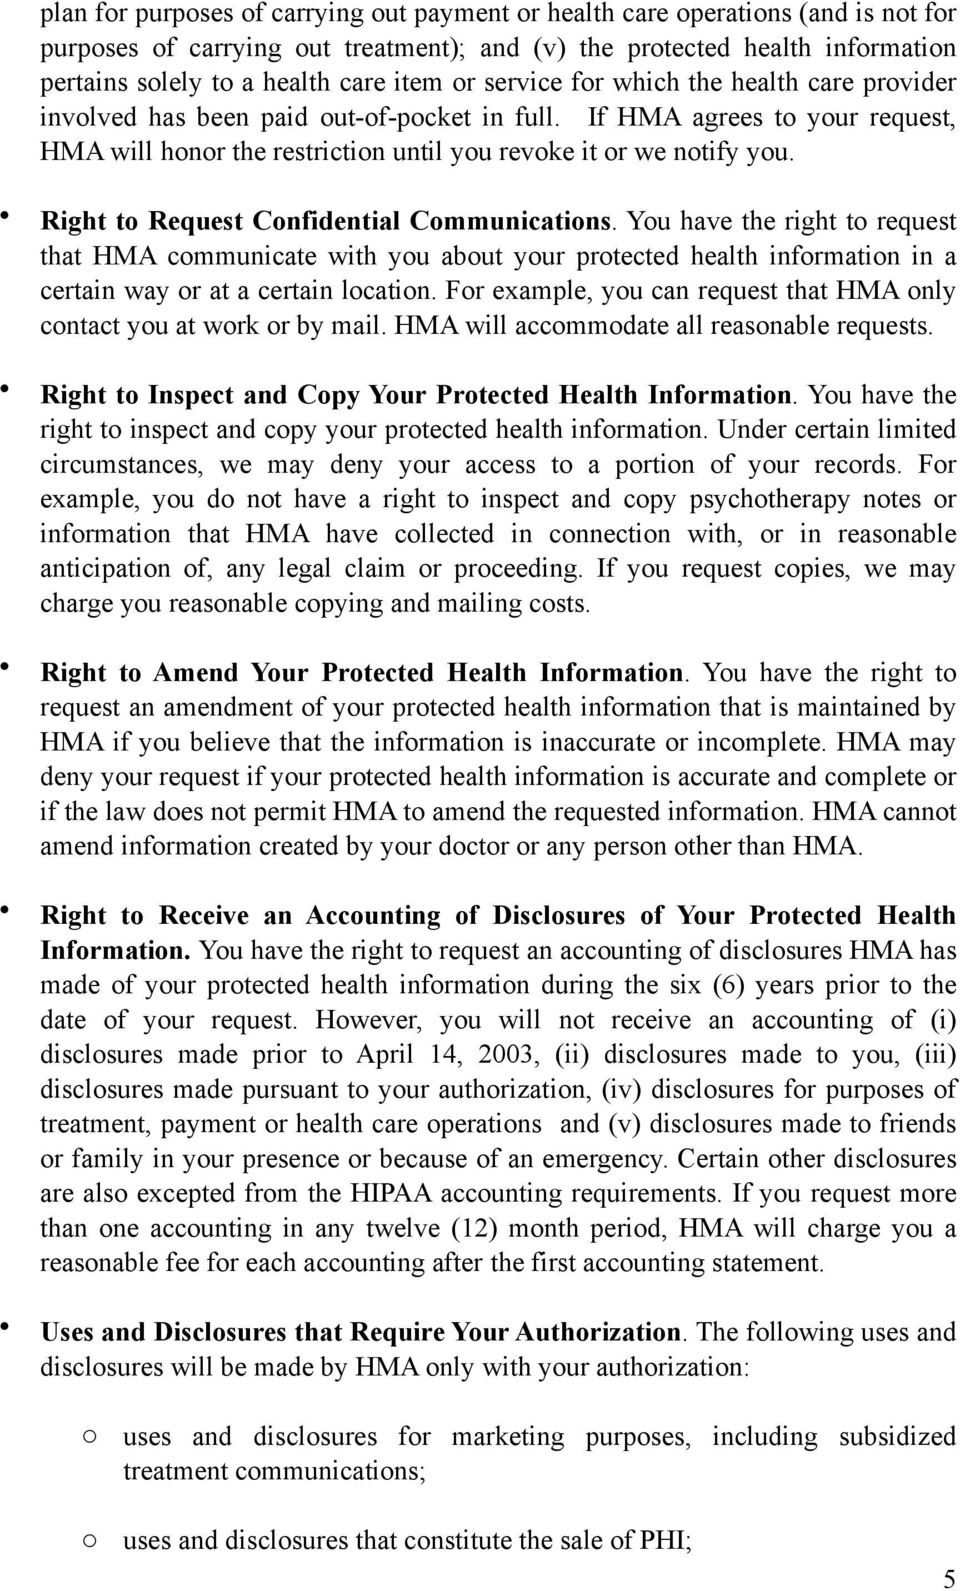 Right to Request Confidential Communications. You have the right to request that HMA communicate with you about your protected health information in a certain way or at a certain location.